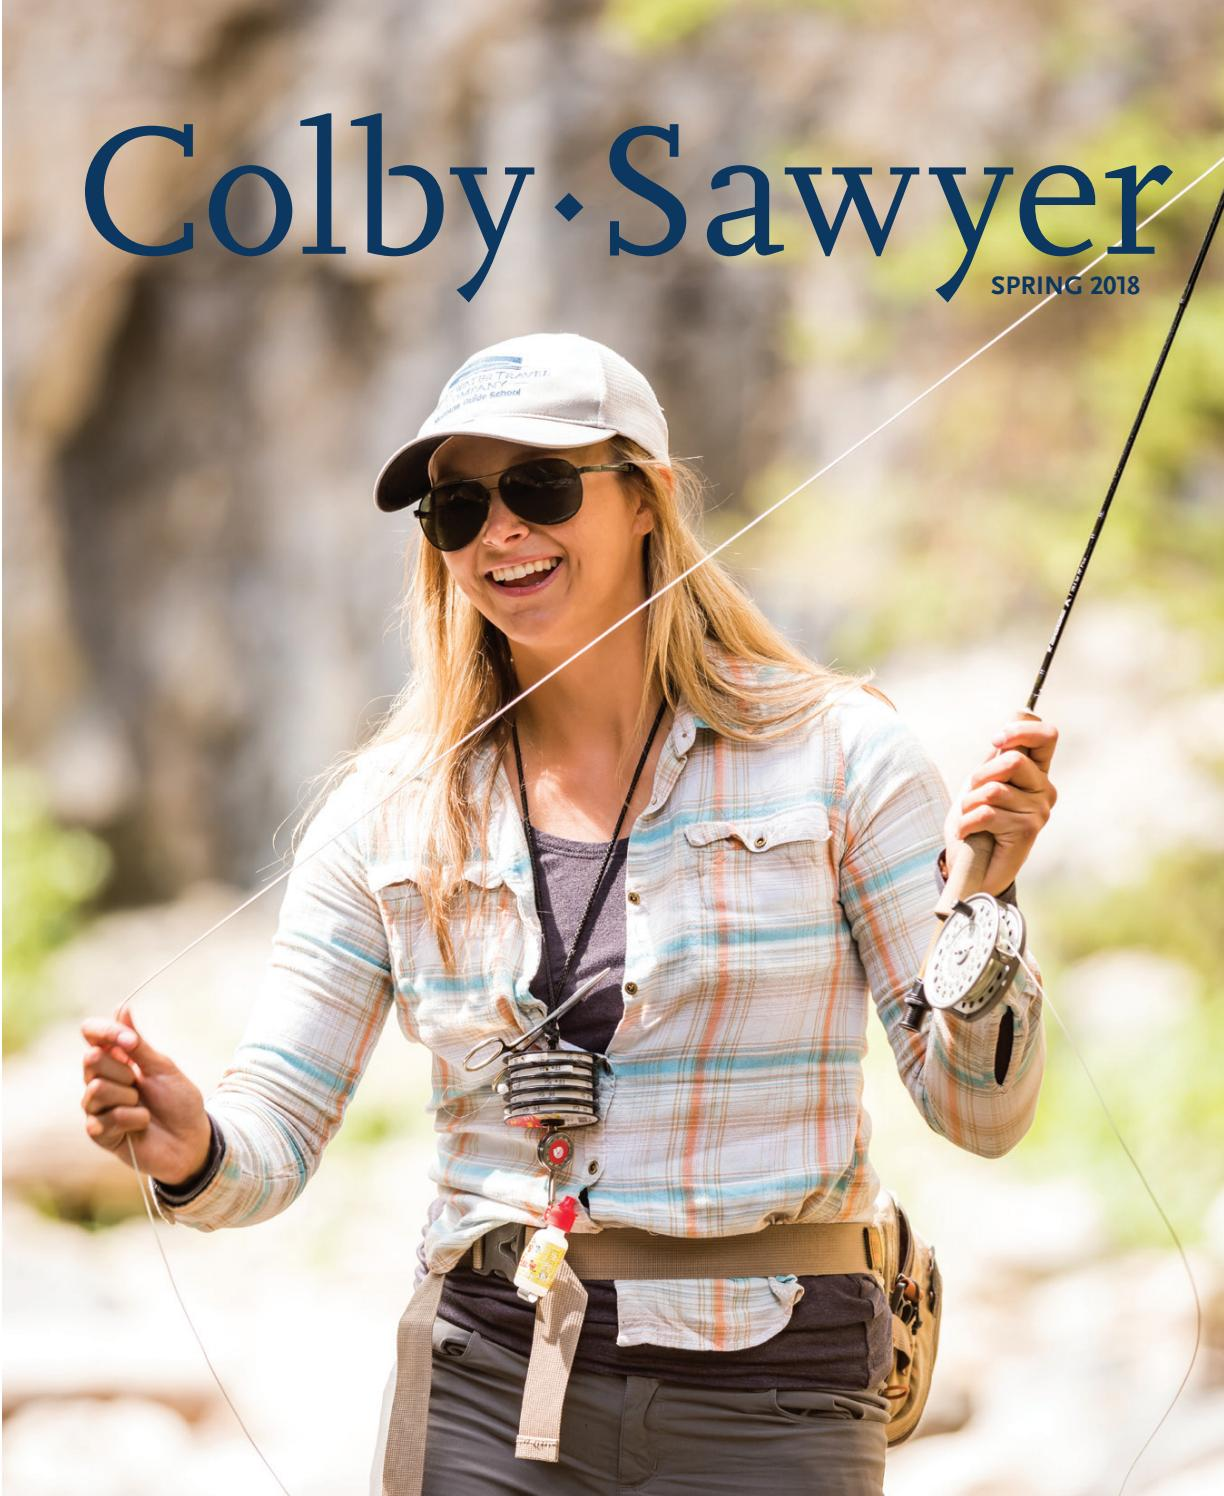 Colby Sawyer Magazine Spring 2018 By College Issuu Sound Source Locator Uses Prechamp